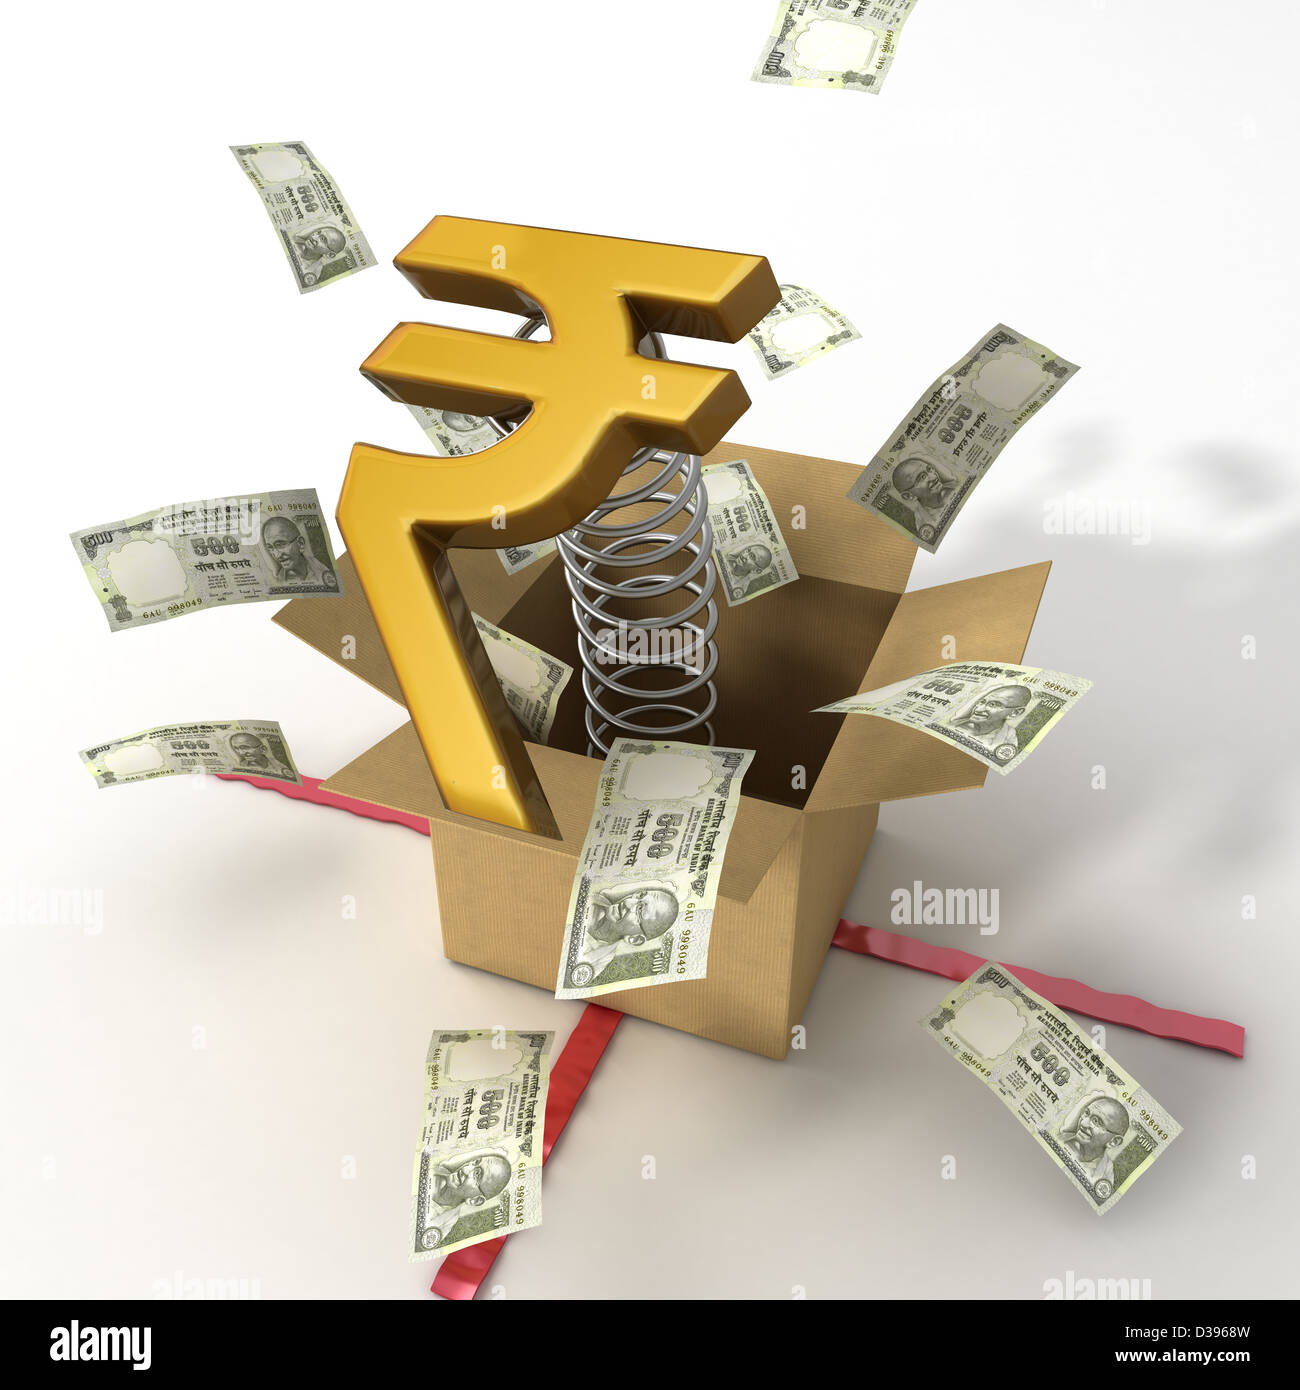 Indian currency notes bouncing out of box with a gold rupee symbol indian currency notes bouncing out of box with a gold rupee symbol on it biocorpaavc Choice Image